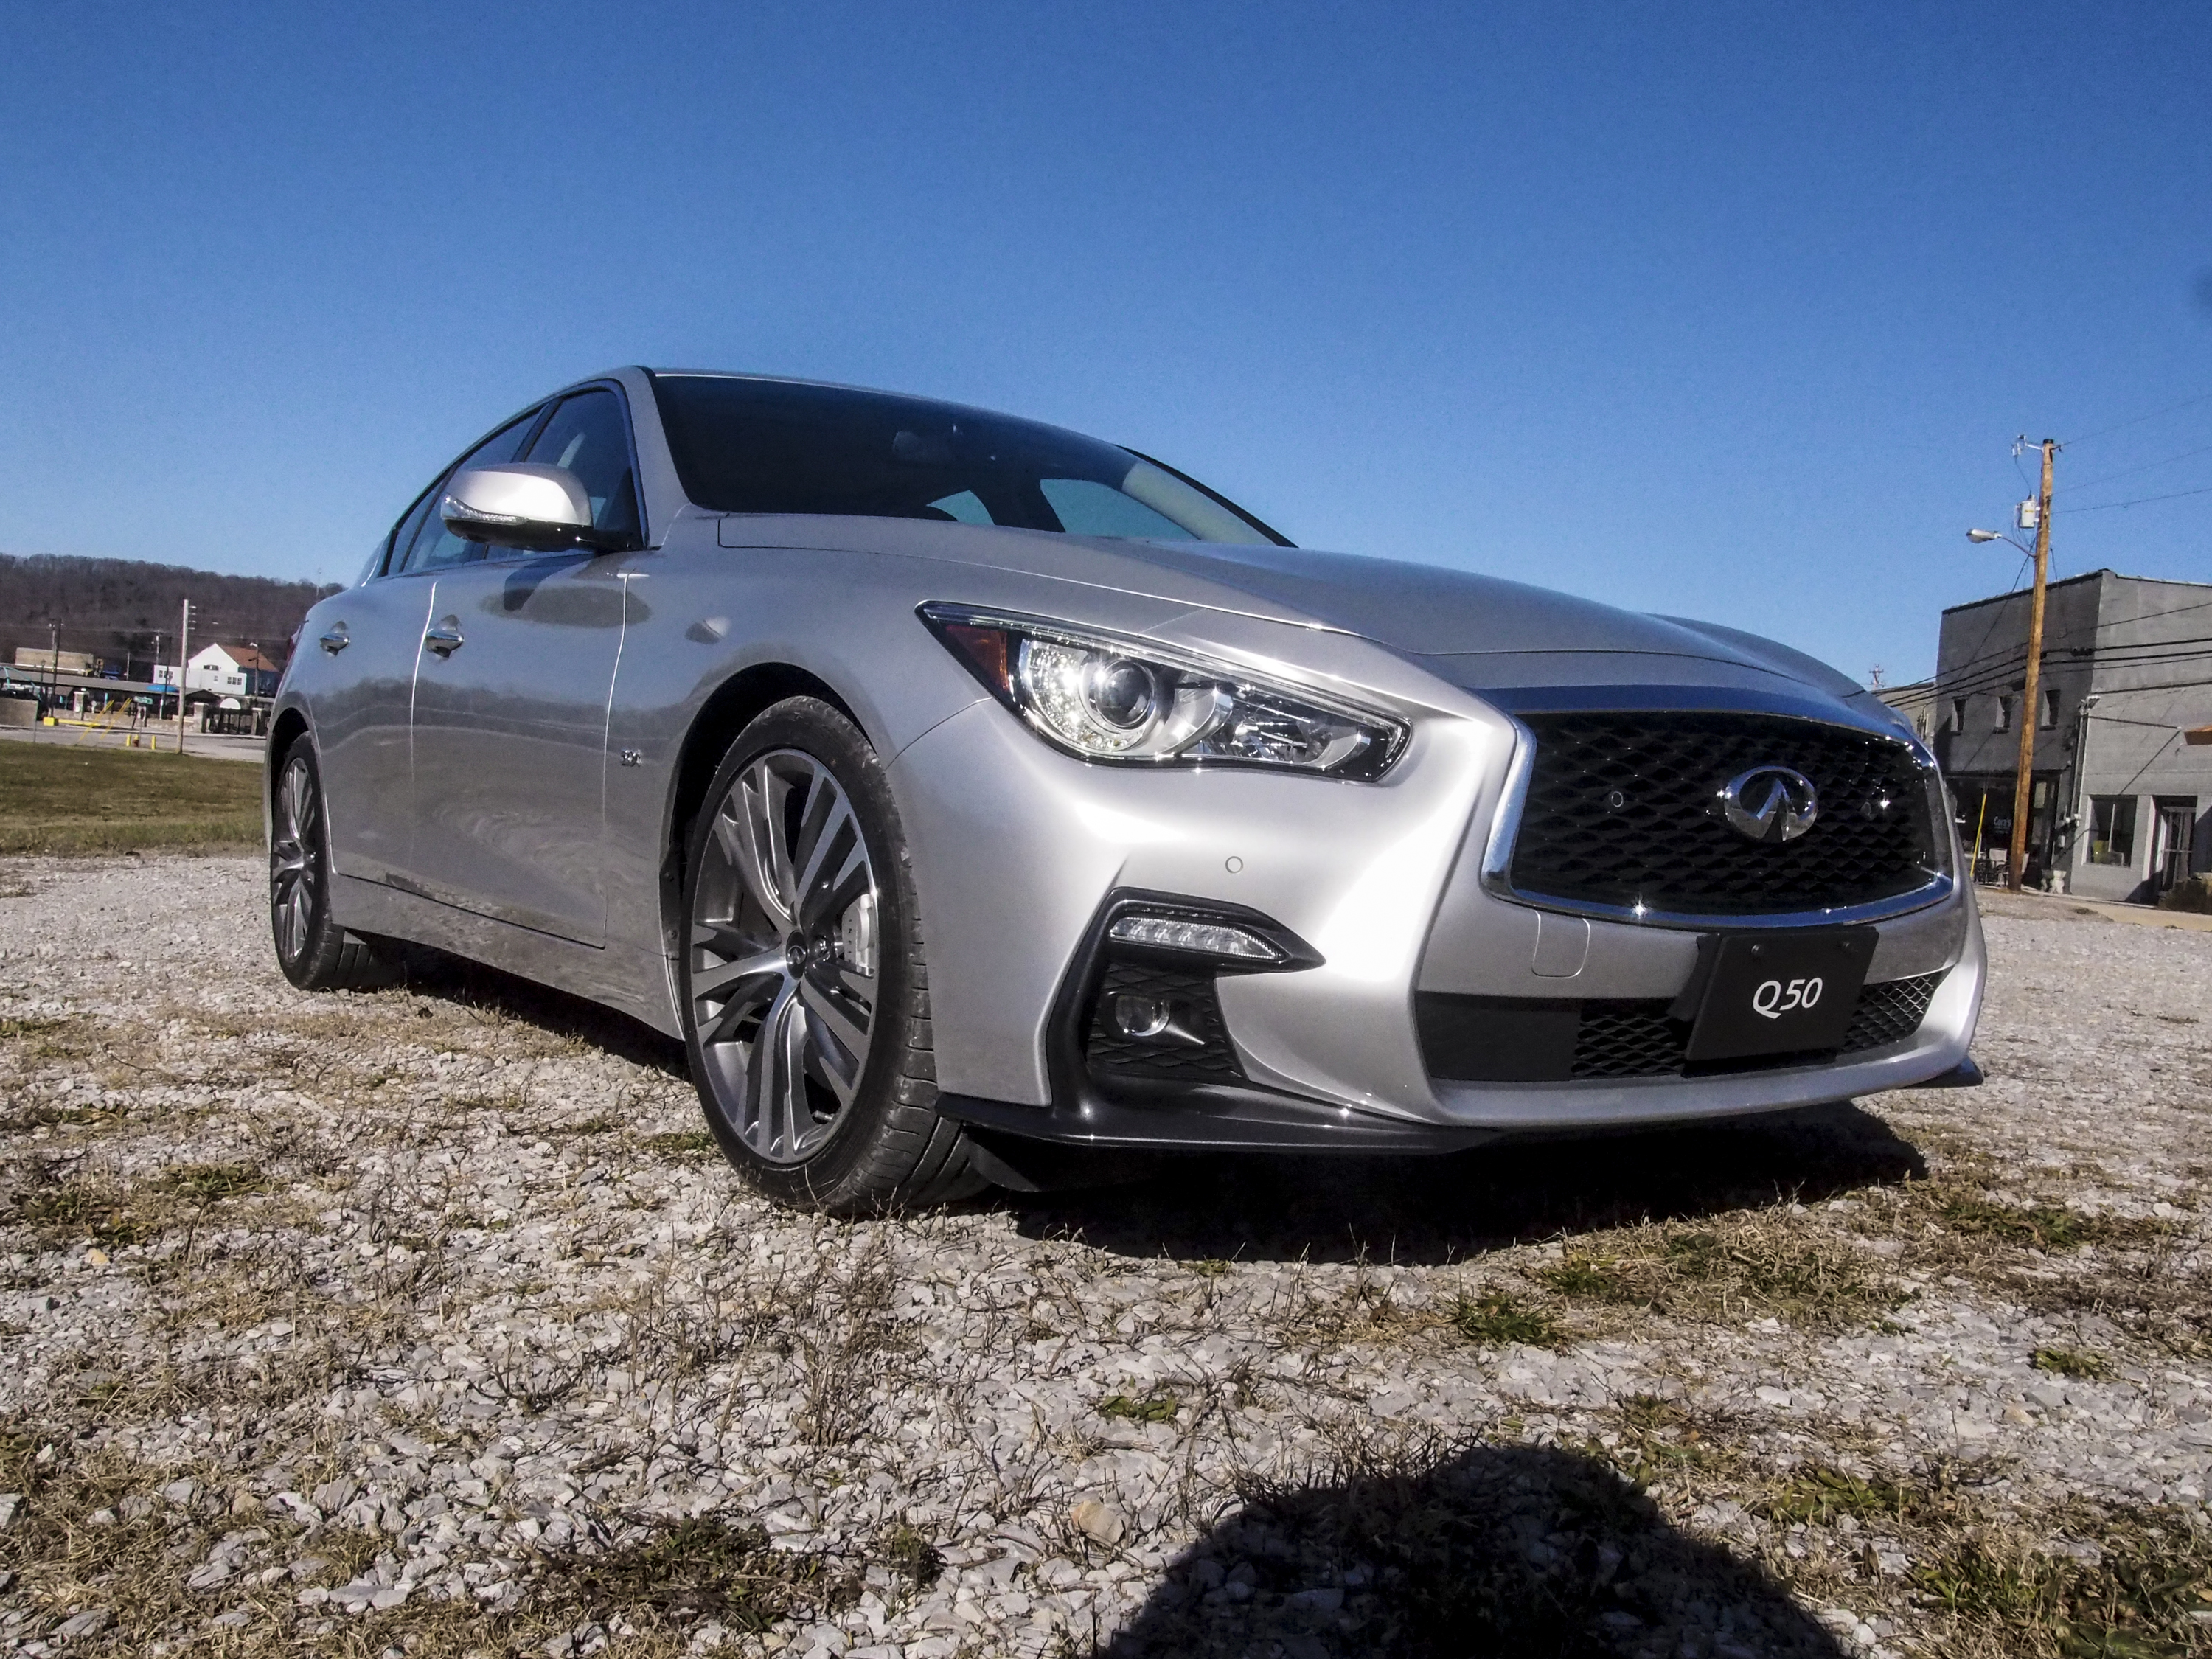 exterior spy date infiniti shoot interior release review infinity and price car